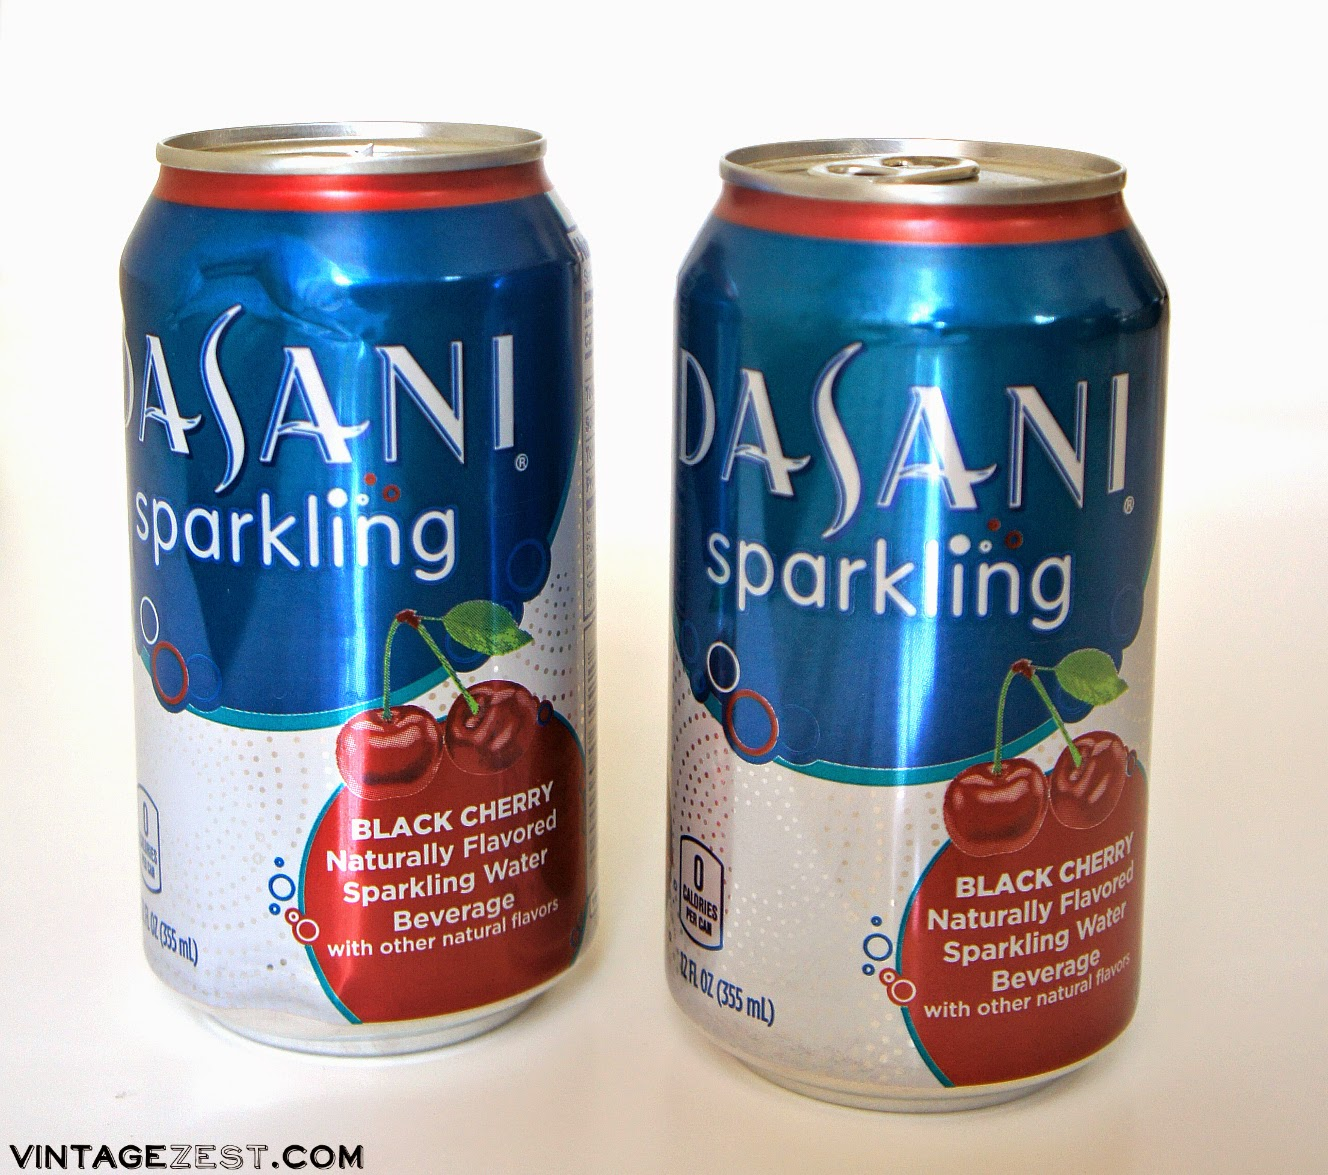 Hydrate this Summer the Sparkling Way on Diane's Vintage Zest! #DASANIsparkling